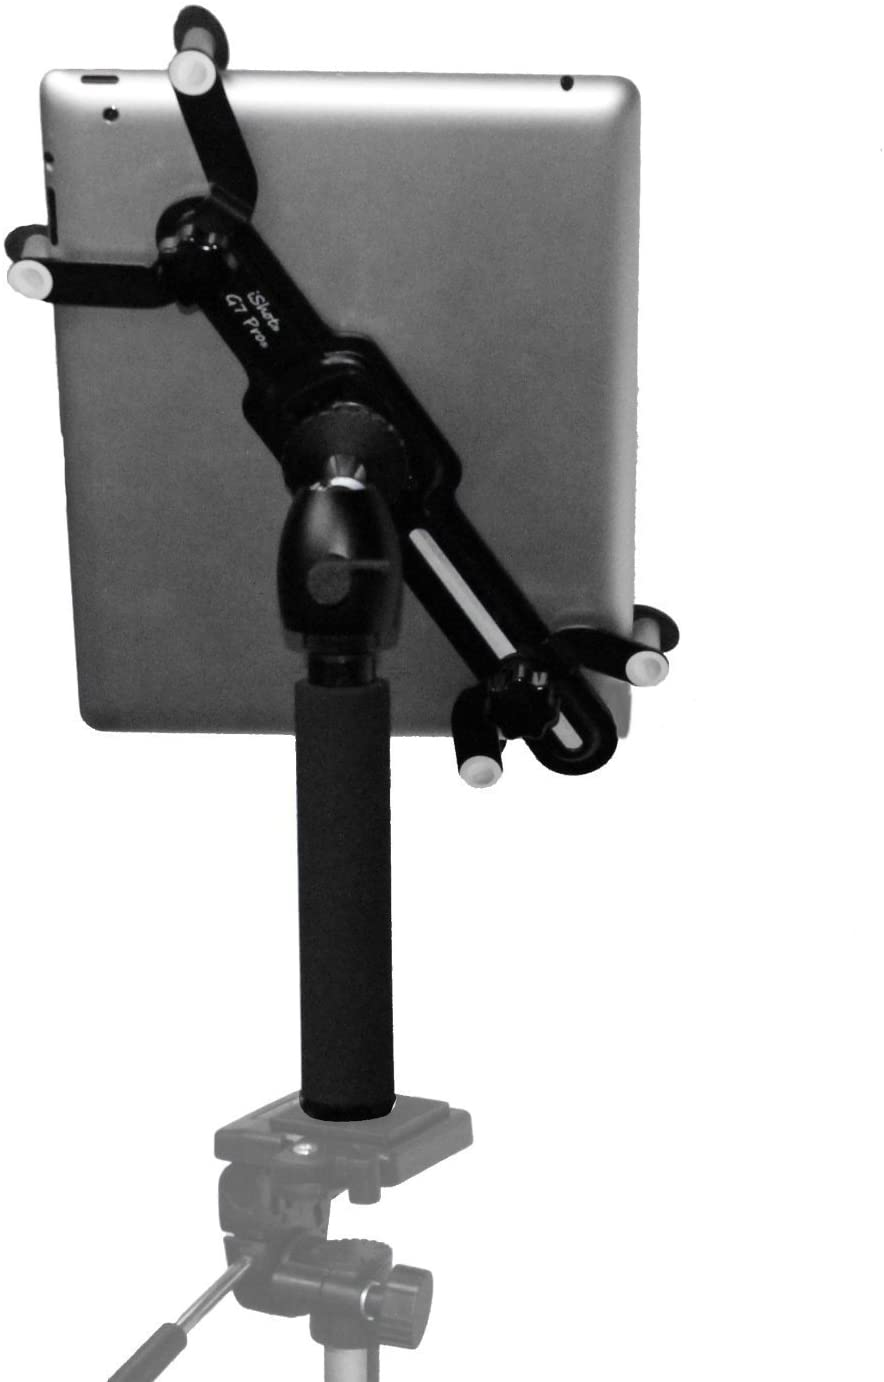 iShot G7 Pro Metal iPad Universal Tablet Tripod Mount Adapter Holder + Camera Tripod Adapter Pole with 360° Swivel Ball Head - Works with Cases up to 1